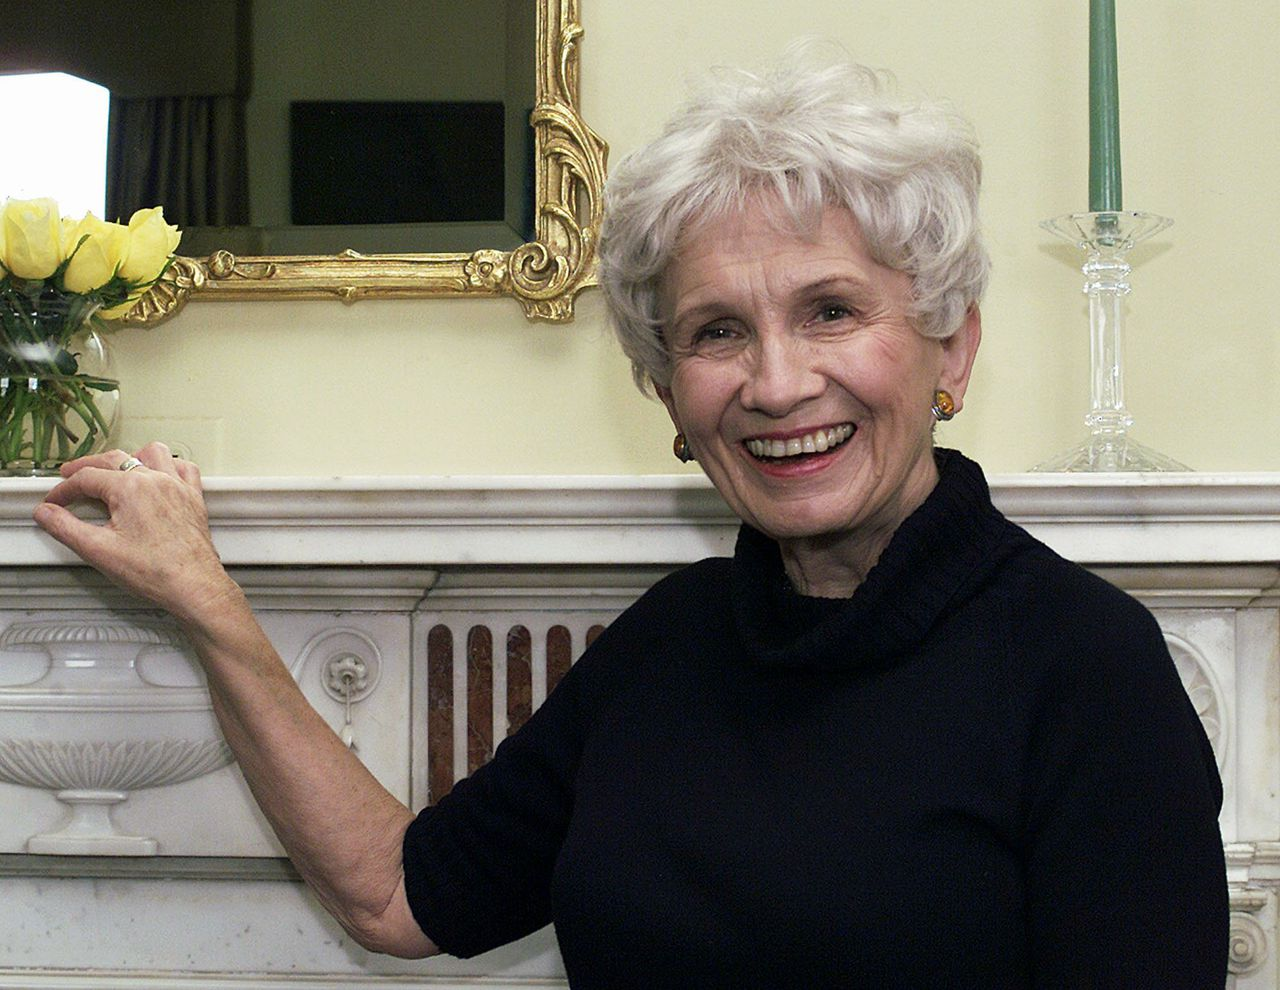 """Alice Munroe Foto AP/Paul Hawthorne ** ADVANCE FOR WEEKEND EDITIONS, APRIL 17-20 **Canadian author Alice Munro poses for a photograph at the Canadian Consulate's residence in New York Oct. 28, 2002. The 71-year-old Munro's published work includes eight short story collections and one novel, """"The Lives of Girls and Women."""" (AP Photo/Paul Hawthorne)"""